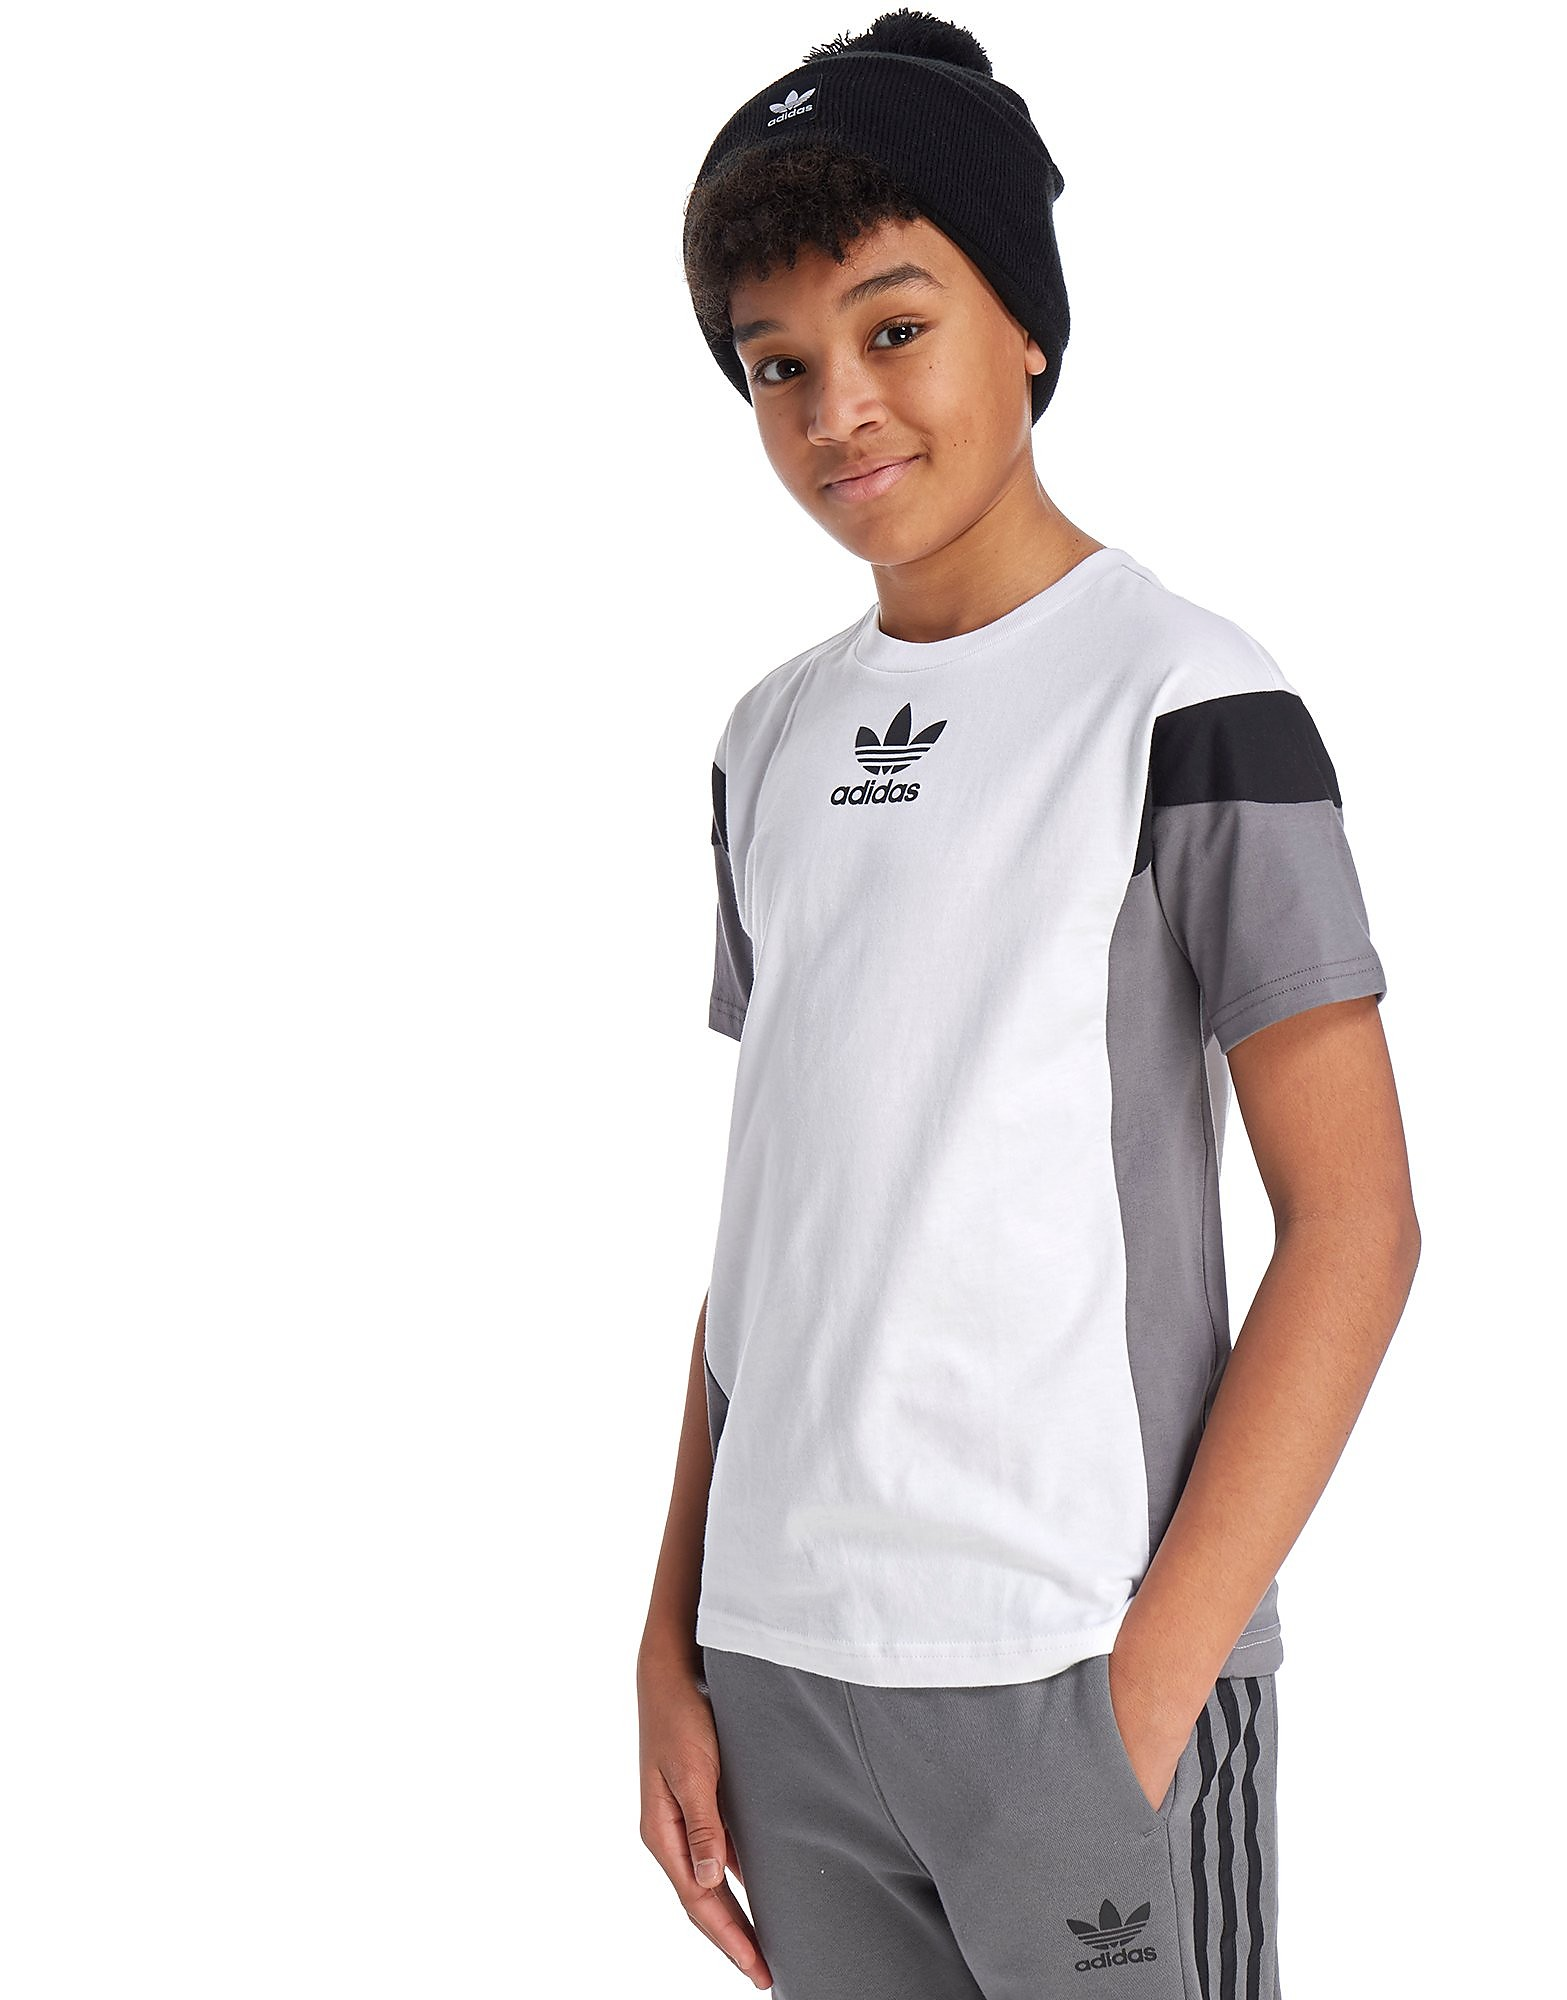 adidas Originals Europe T-Shirt Junior